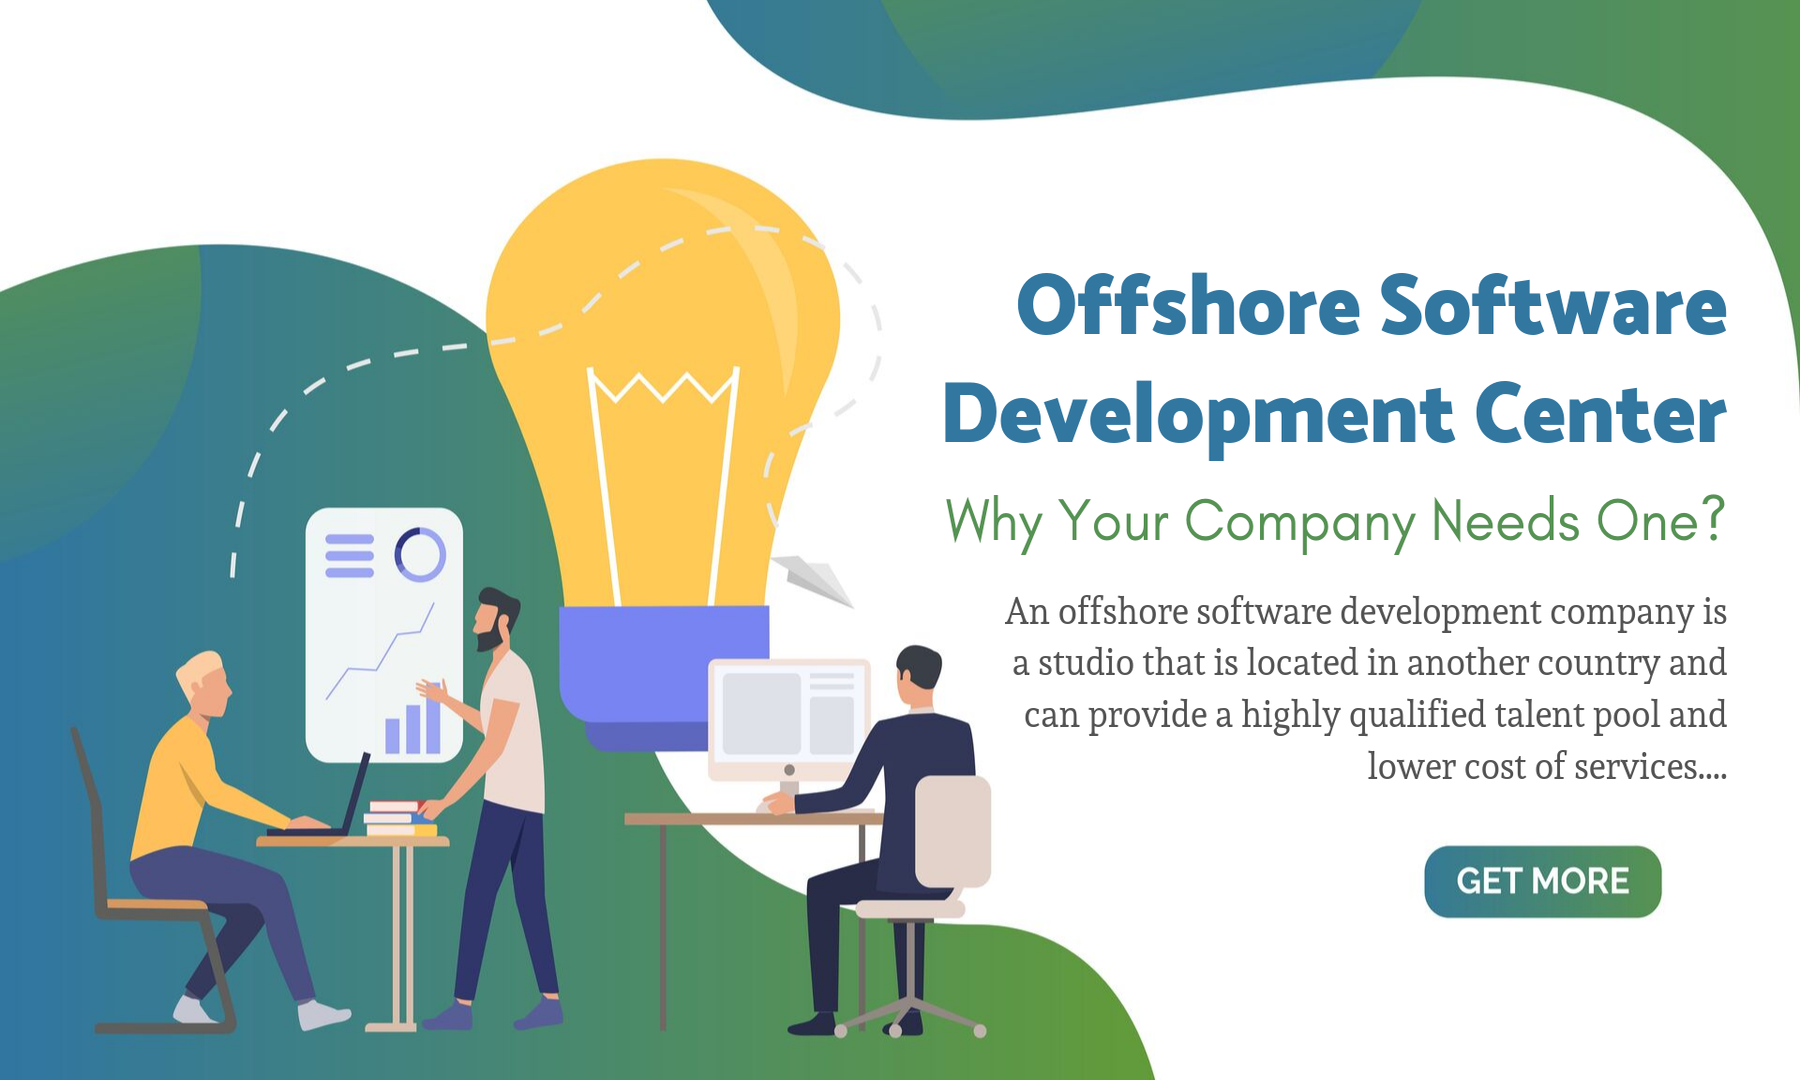 Offshore Software Development Center: Why Your Company Needs One?